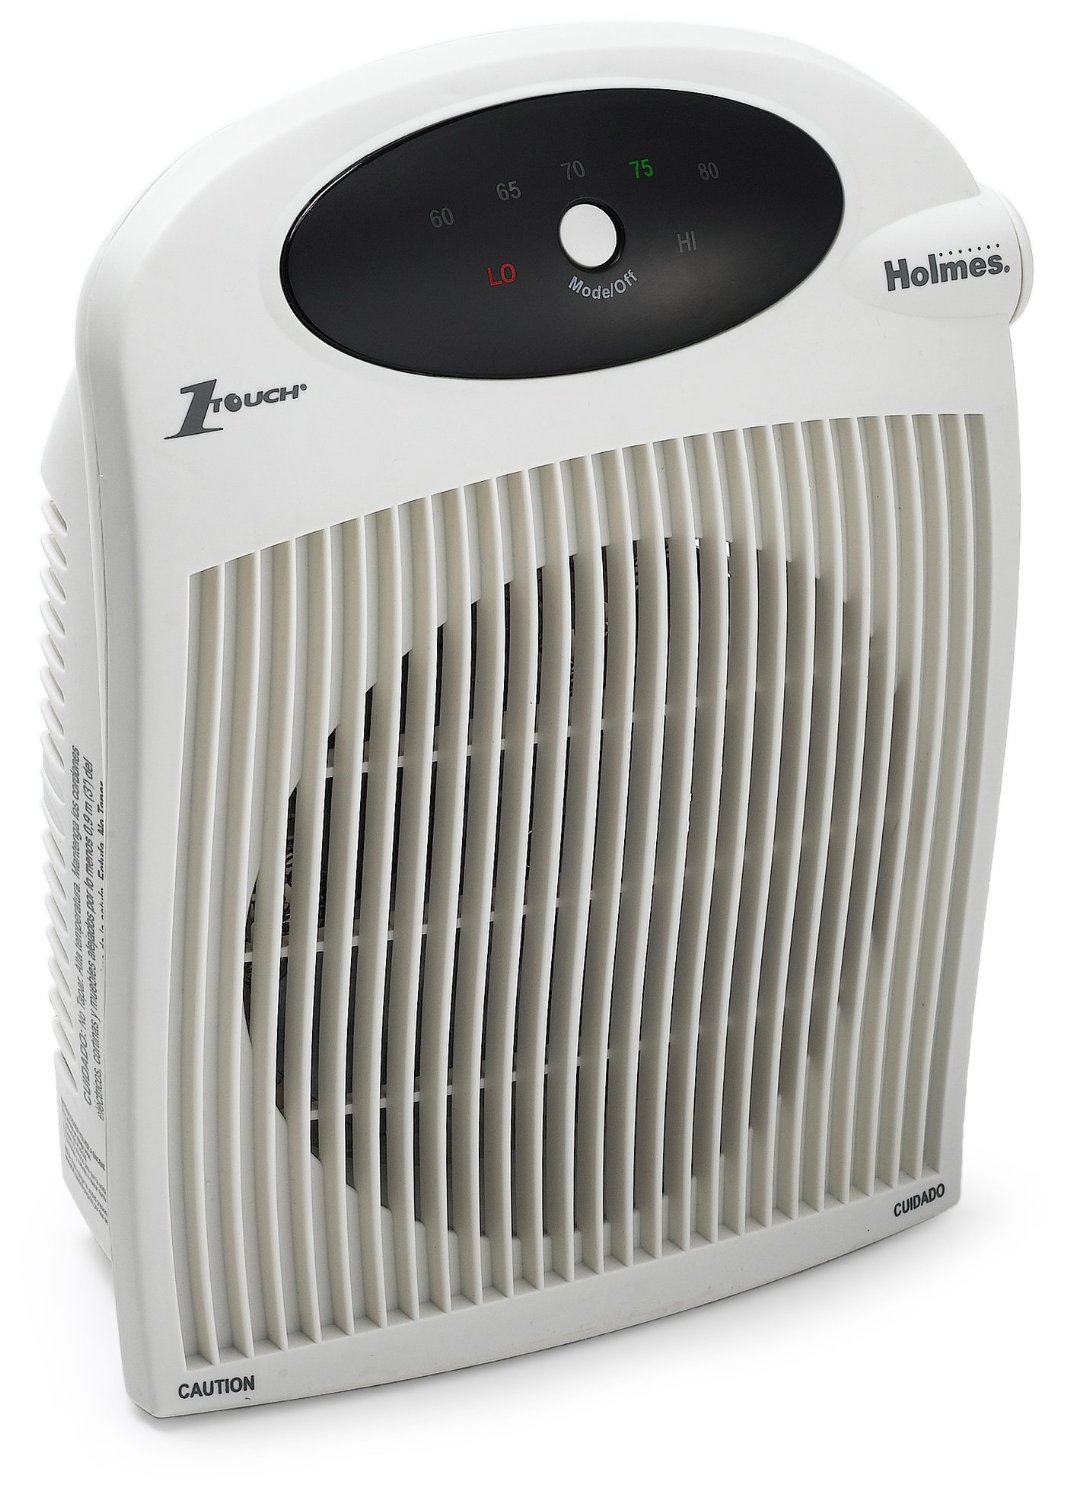 Temperature Controlled Room Fan : Wall mount space heater to warm up room inside your house